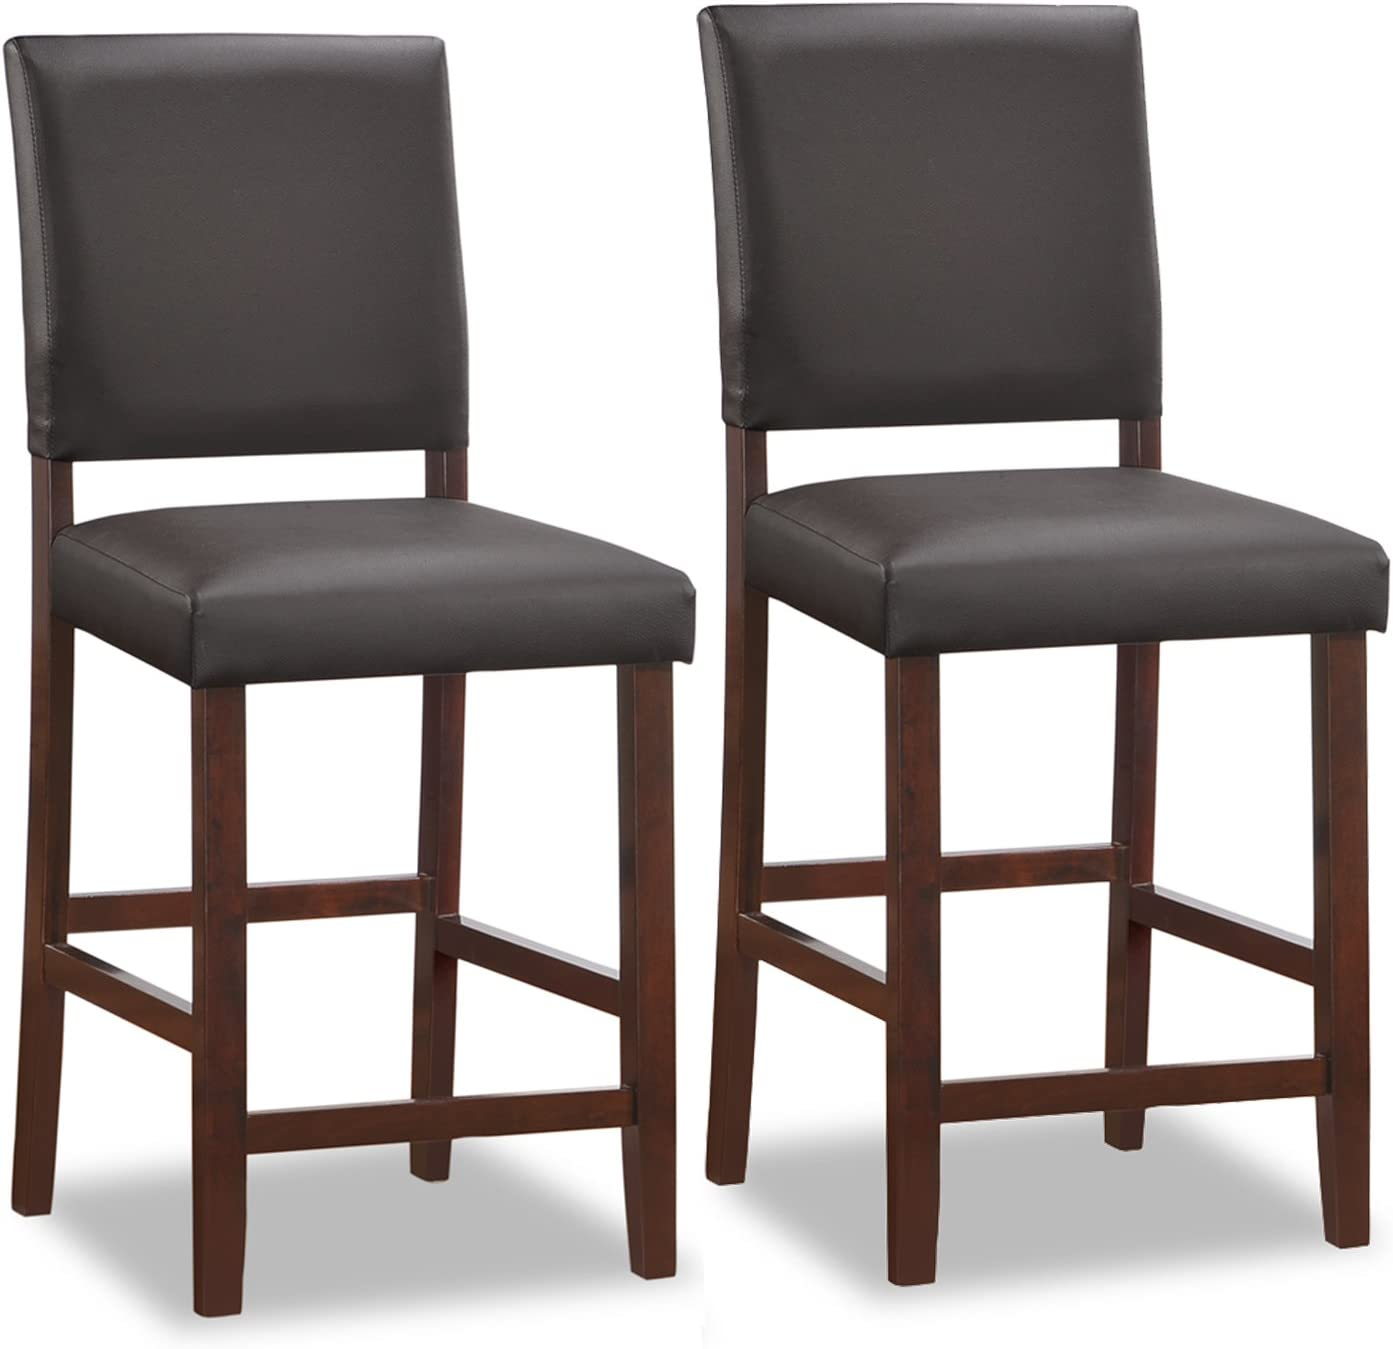 Leick Wood Upholstered Back Counter Height Bar Stool with Ebony Faux Leather Seat, Set of 2